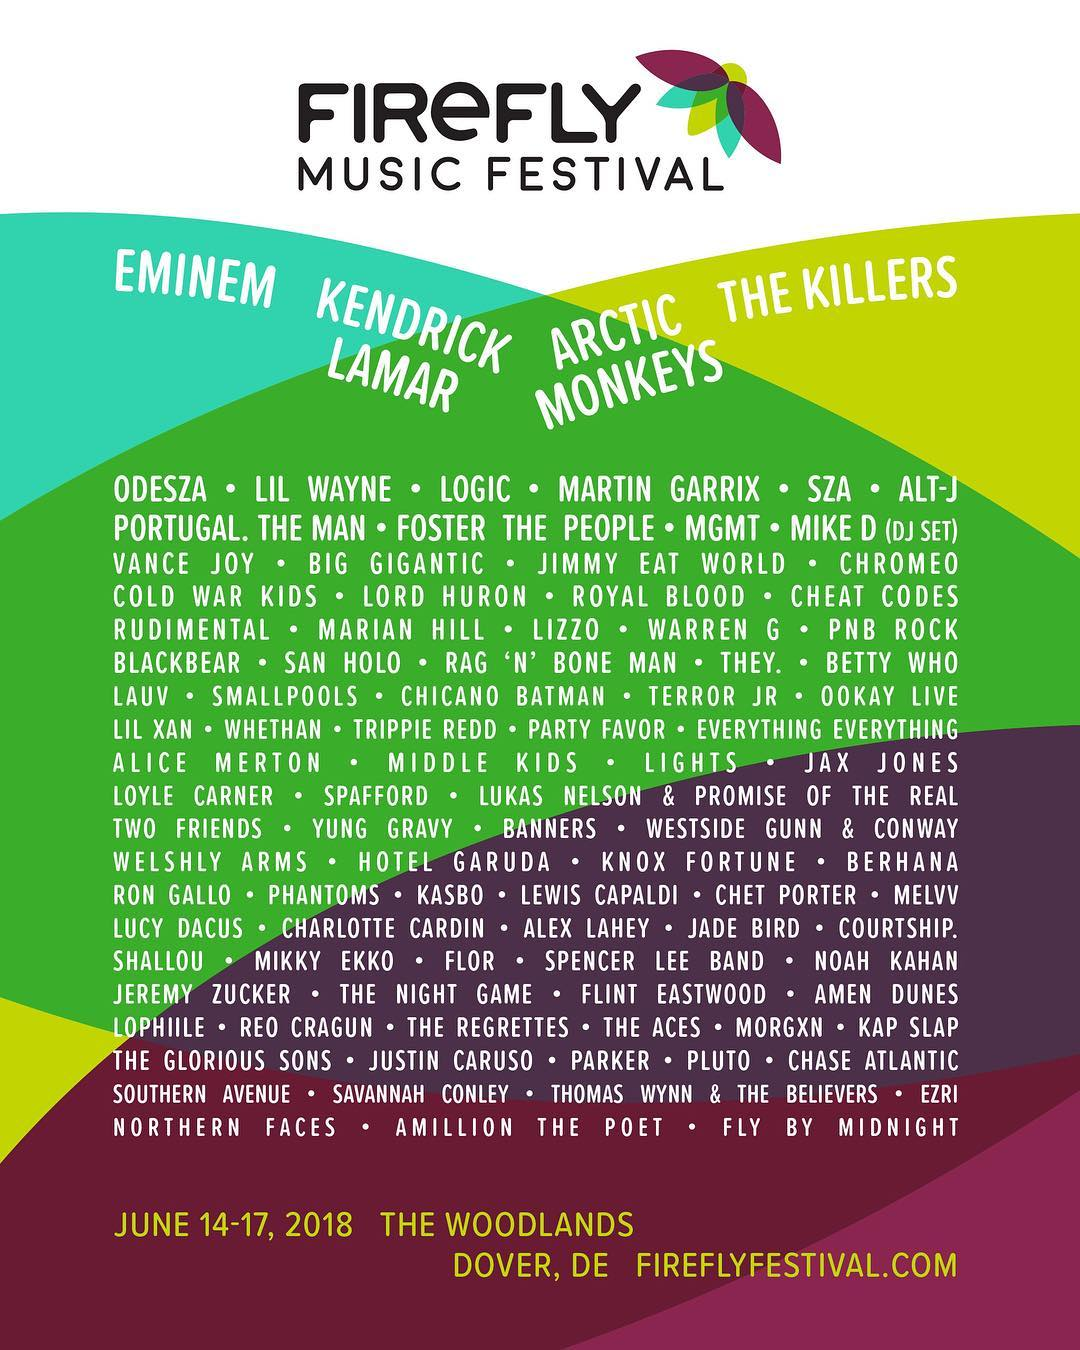 Firefly 2018 Line up: Arctic Monkeys, Eminem, The Killers and Kendrick Lamar